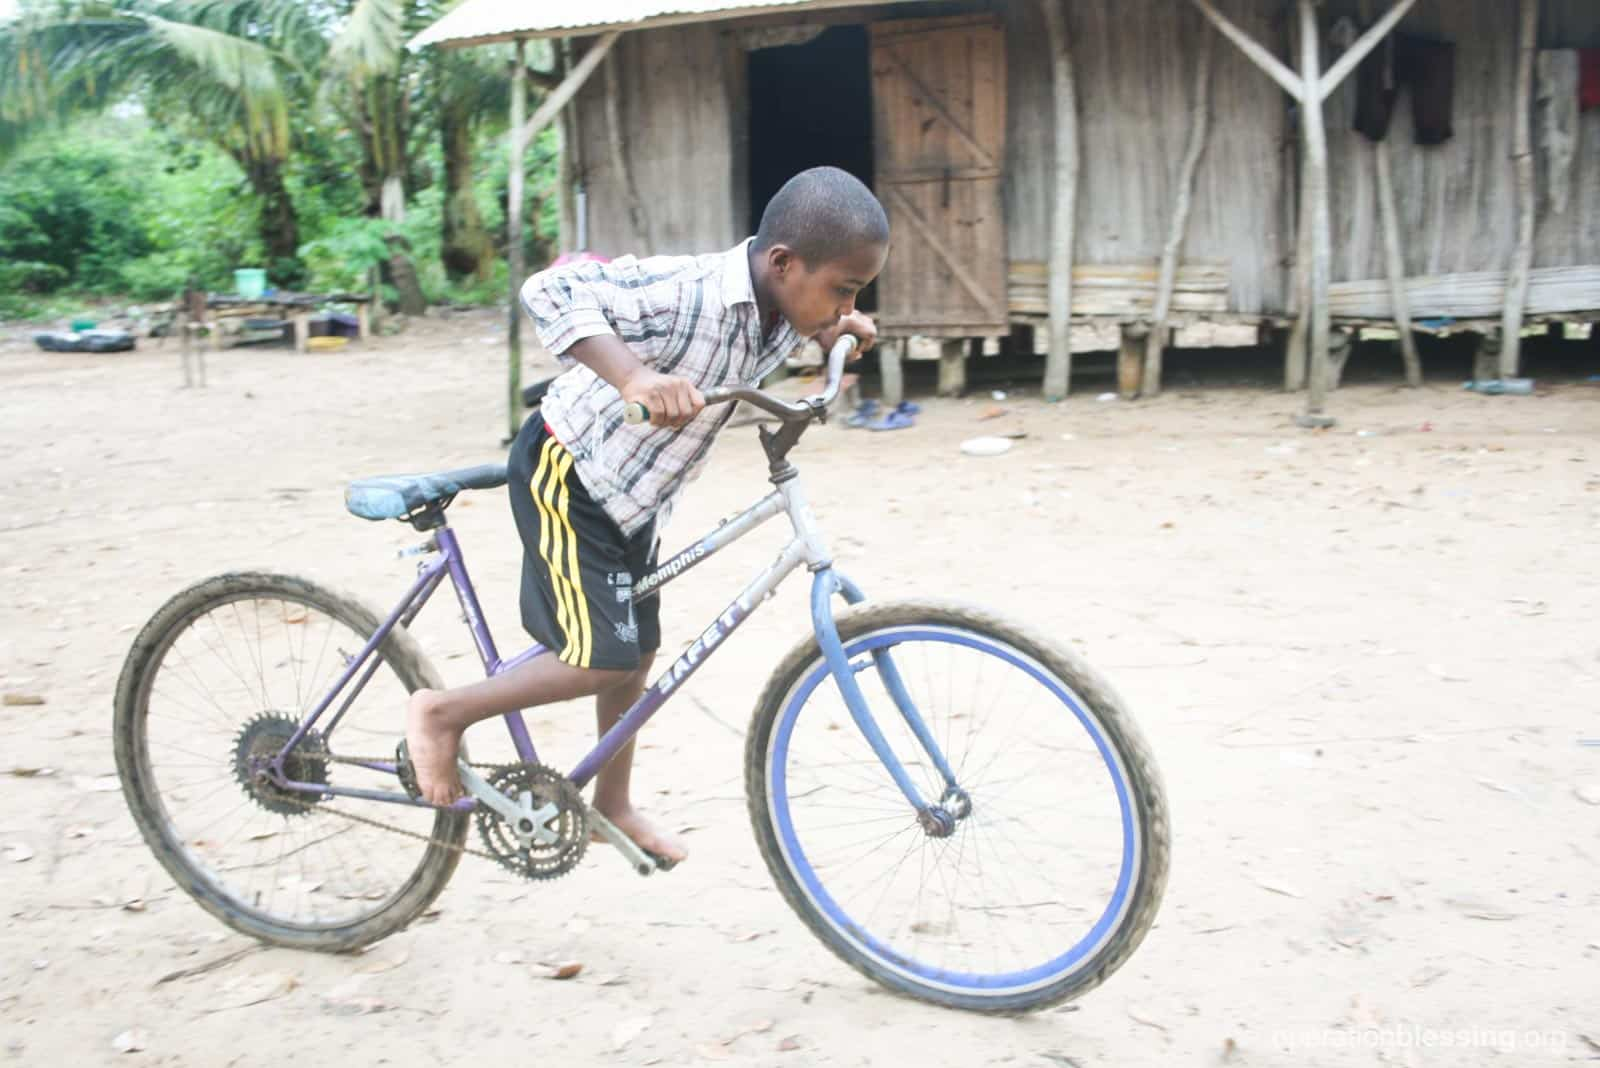 Juldo happily riding his bike through his village in Madagascar after suffering from clubfoot for a decade.